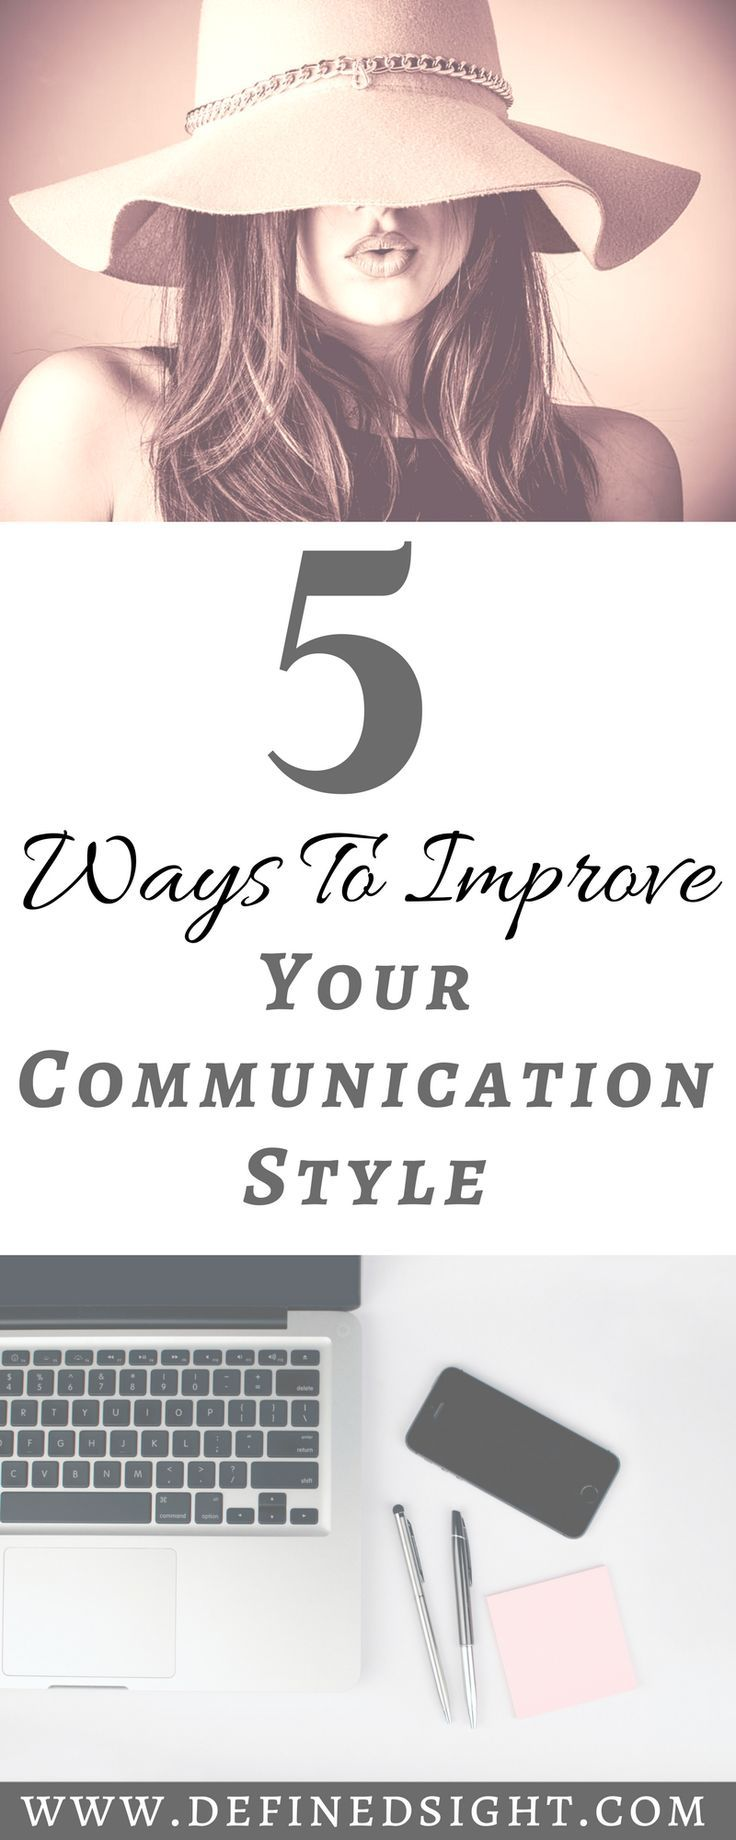 Are you an effective communicator? Or do people often ask you questions after you say something? Answer these 5 questions to find out if you are wording your sentences in the proper format to call your audience to action. Improve your communication style right now and eliminate the need for followup questions! #PersonalDevelopment #ProfessionalDevelopment #Focus #Careers #Millennials #GenY #Communication #Workforce #HowToBeHappy #BeMoreChill #DefinedSight